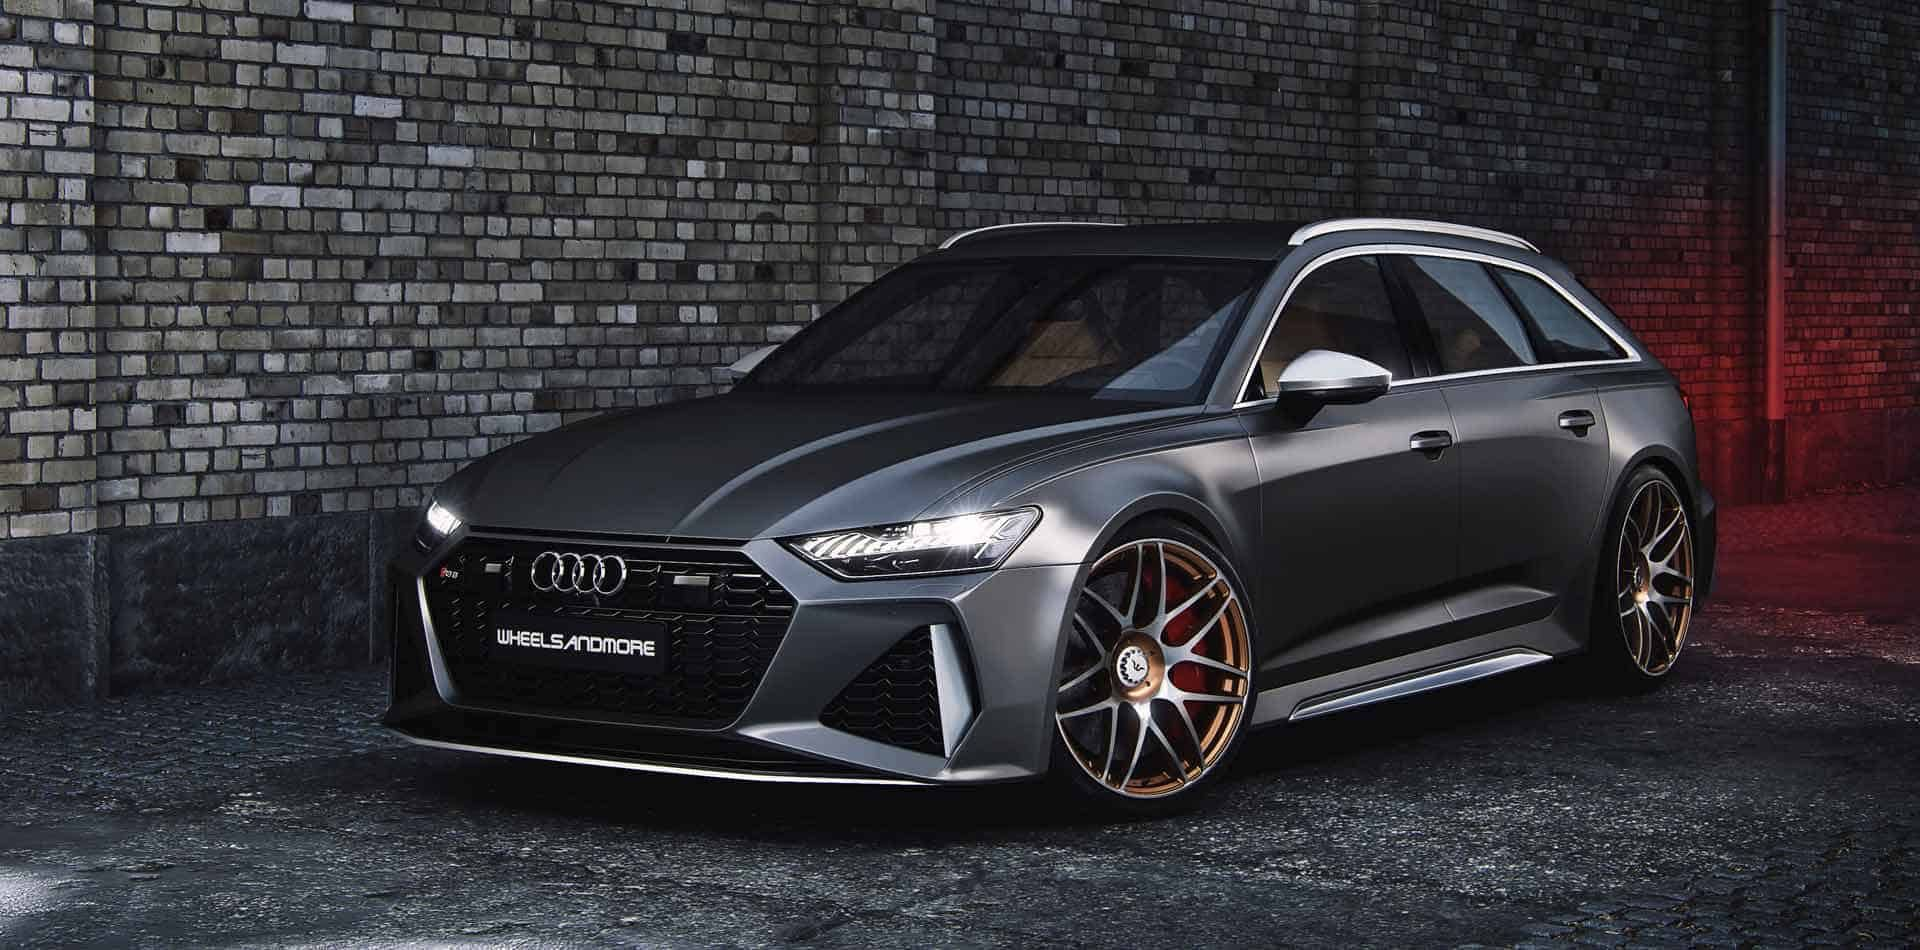 Audi Rs6 Avant By Wheels And More The 1 000 Horsepower Beast You Really Want Top Speed In 2020 Audi Rs6 Bugatti Veyron Audi